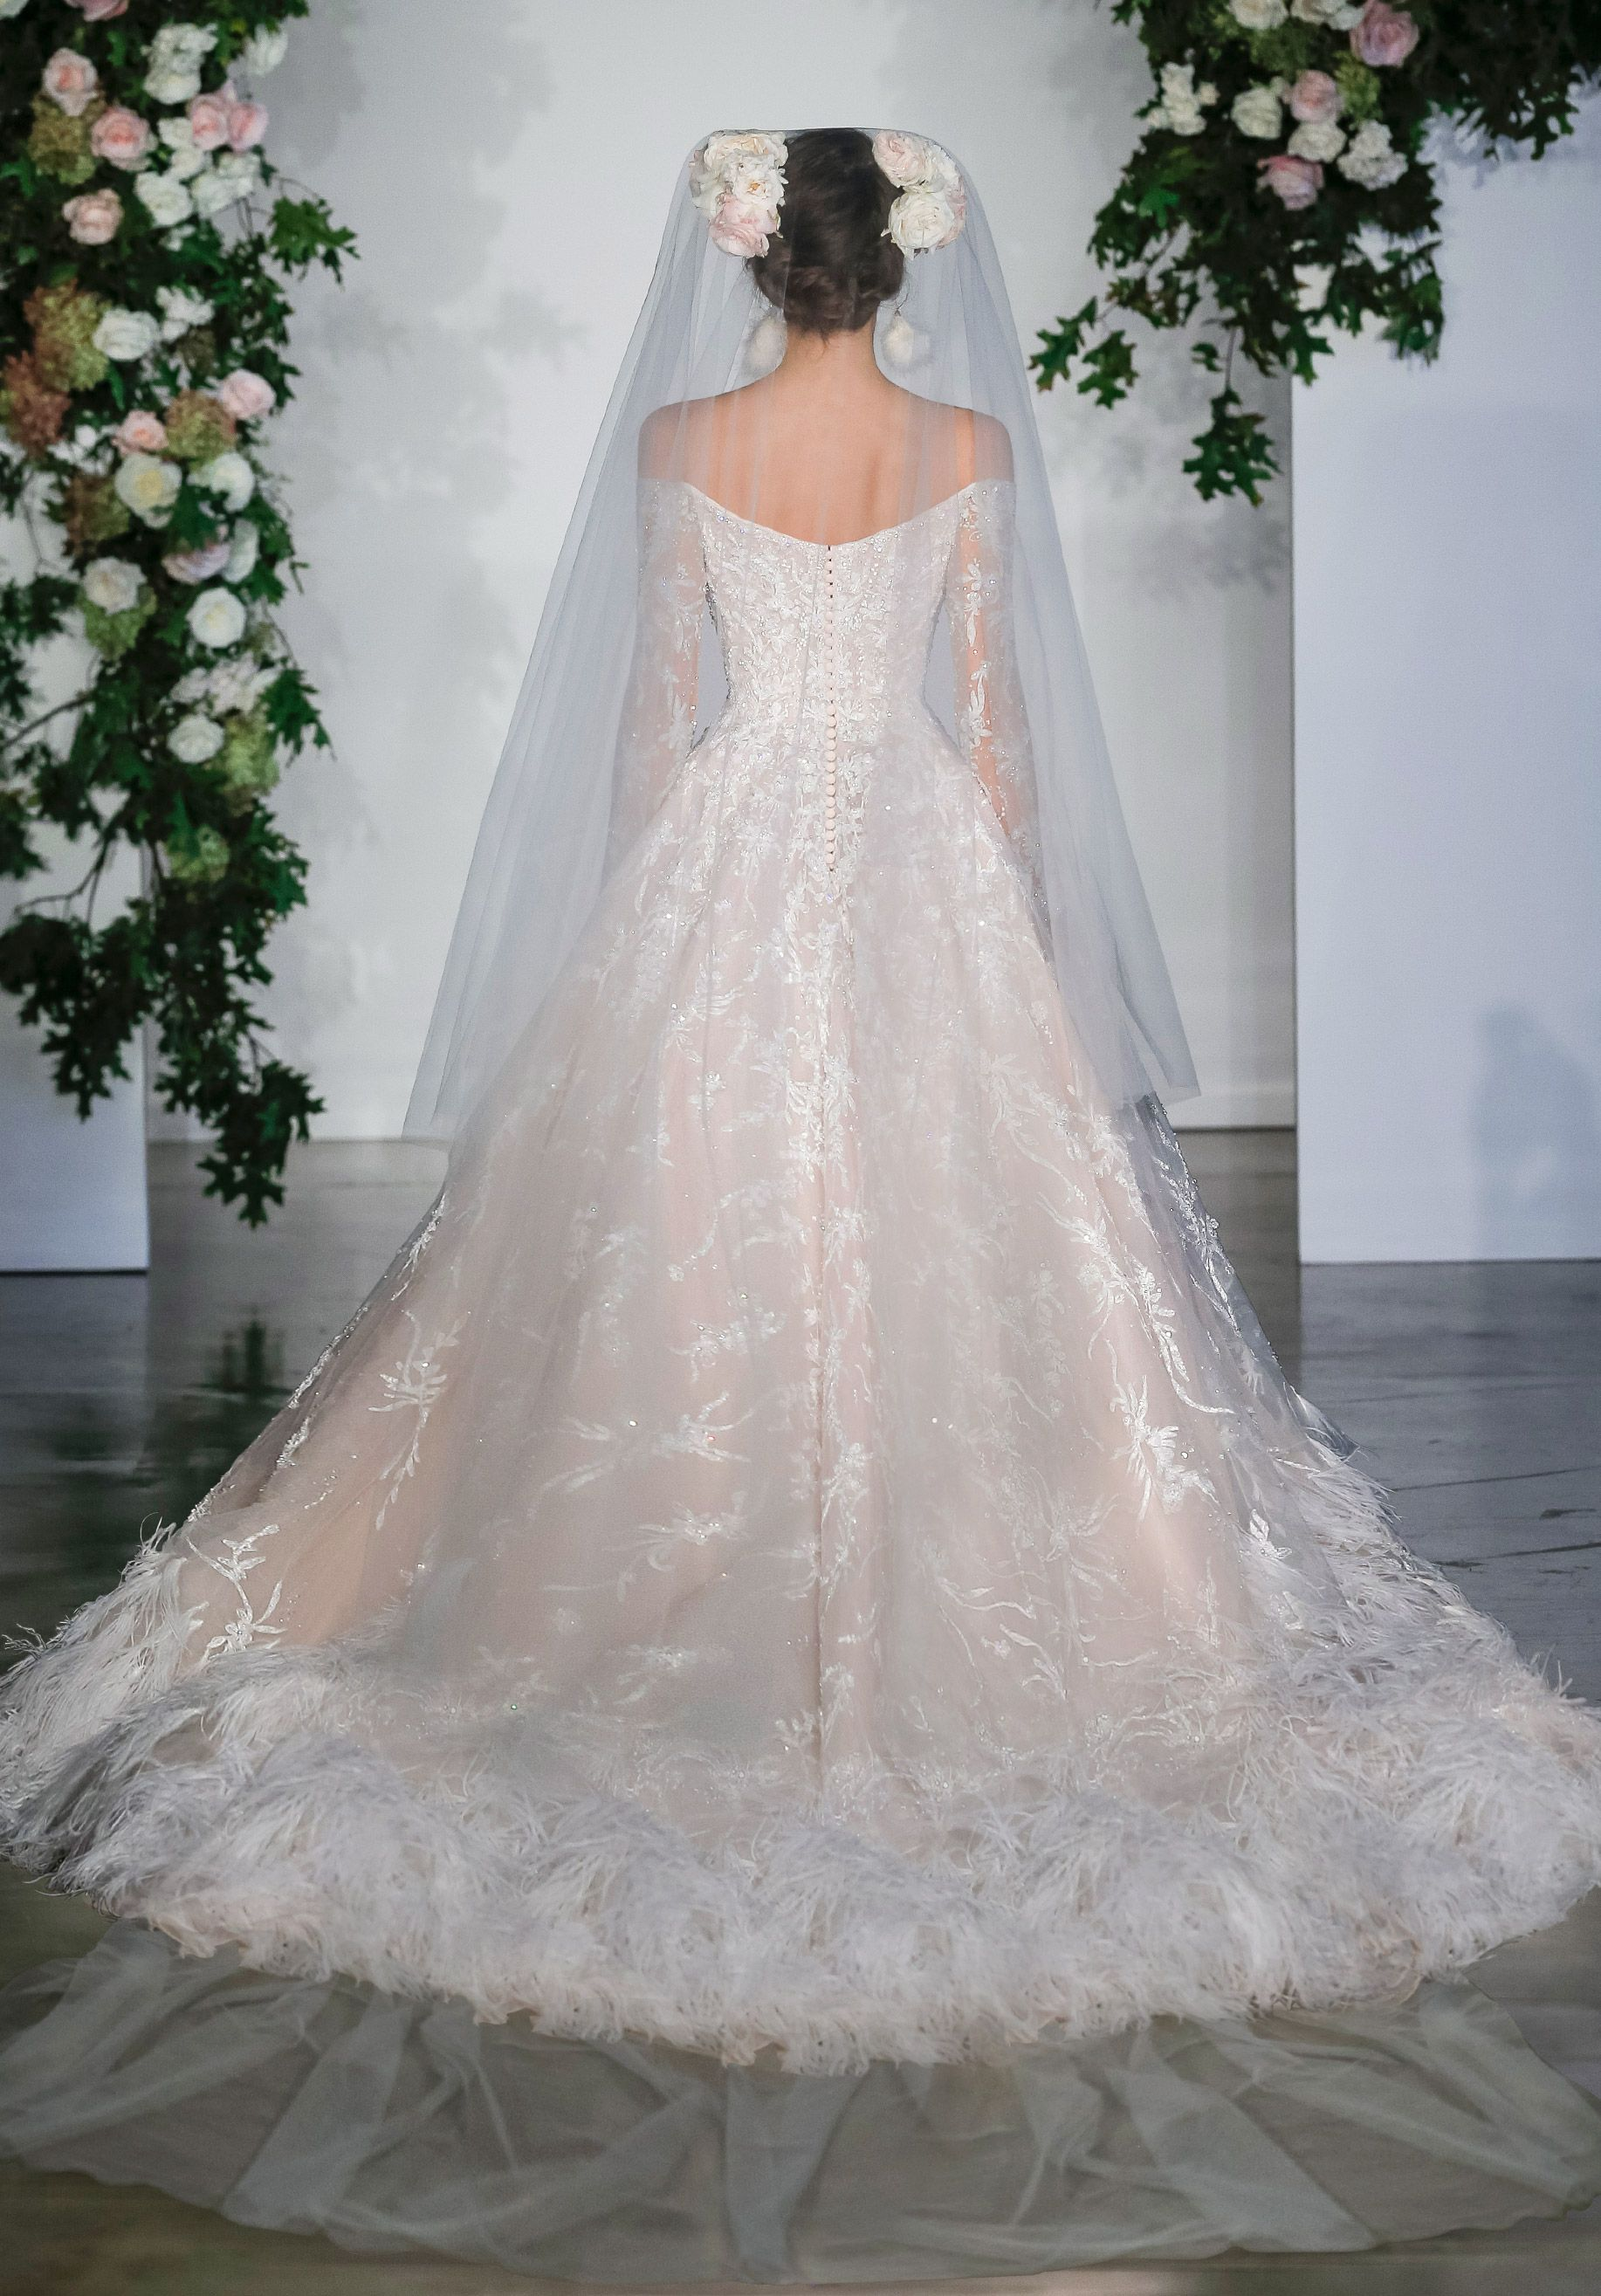 Delicate beading accents the textured embroidery on the tulle